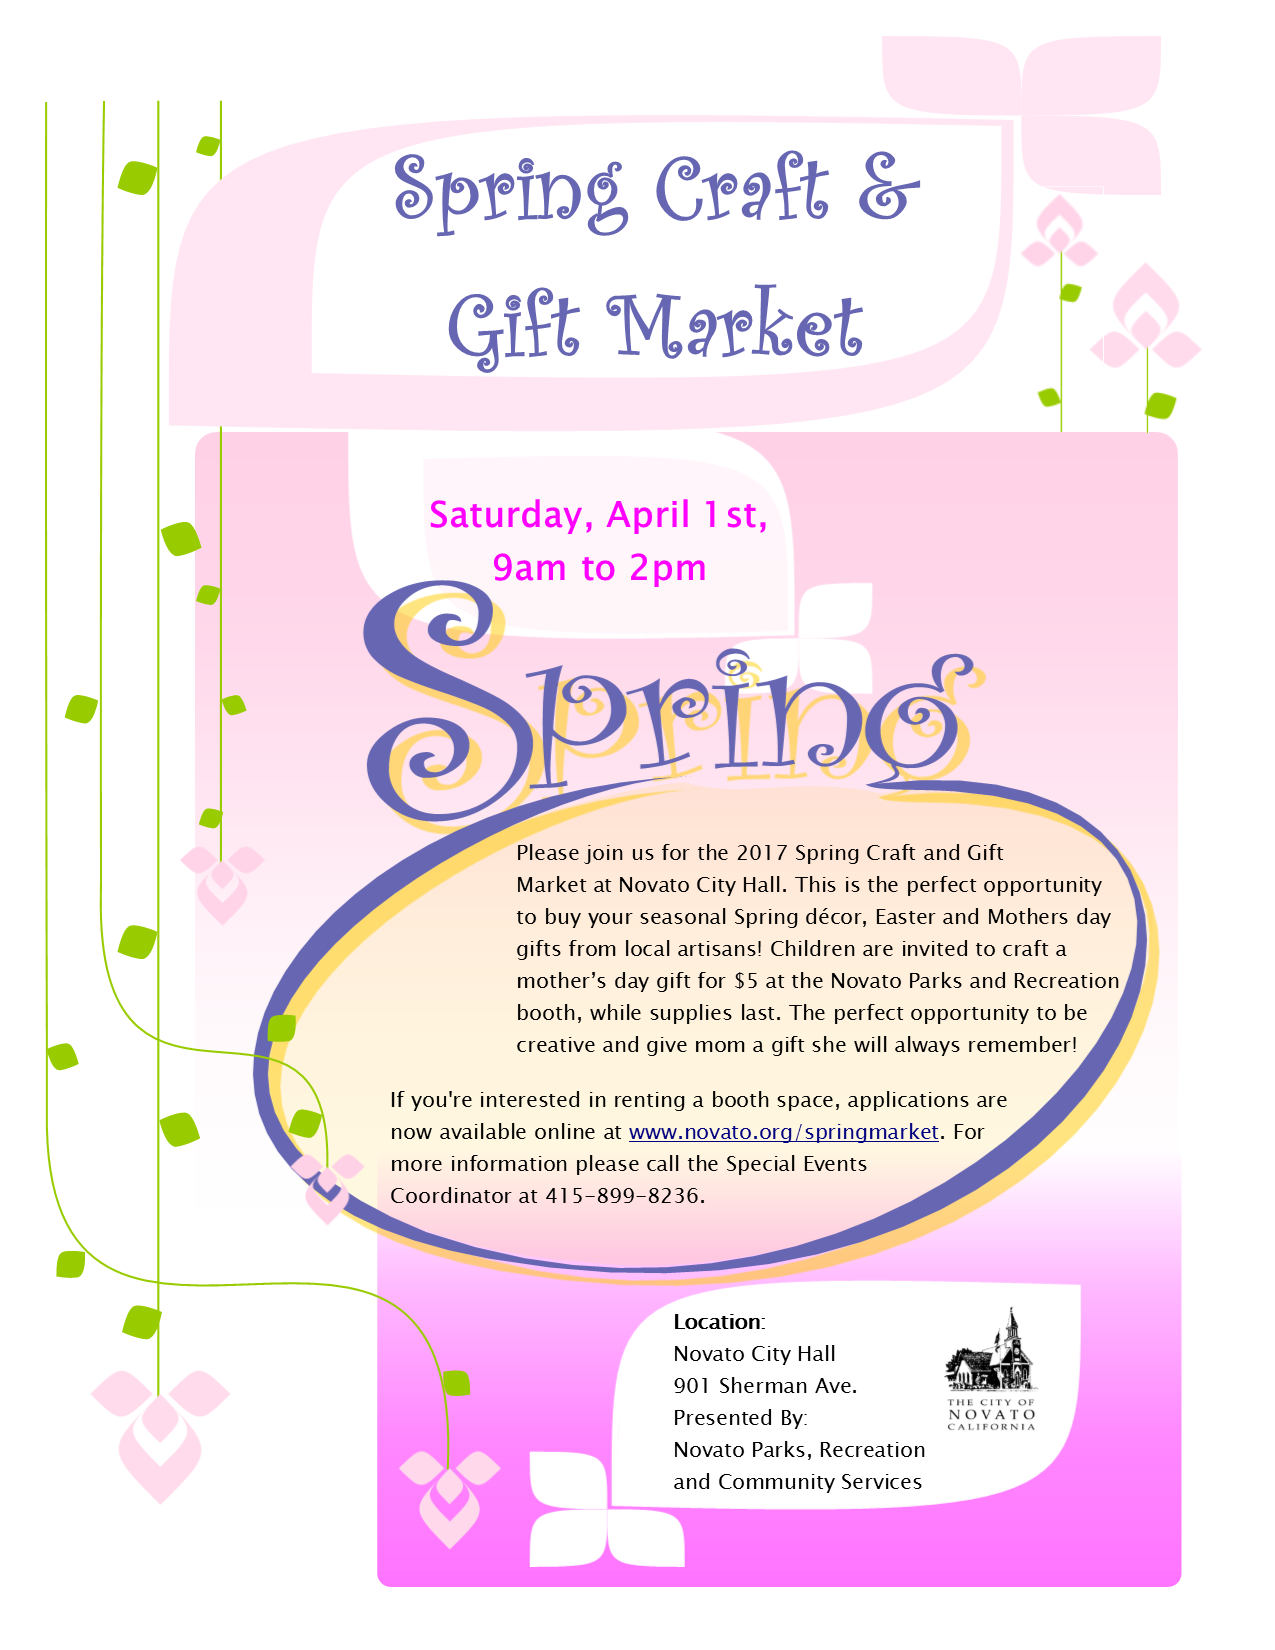 Spring Craft & Gift Market Flyer